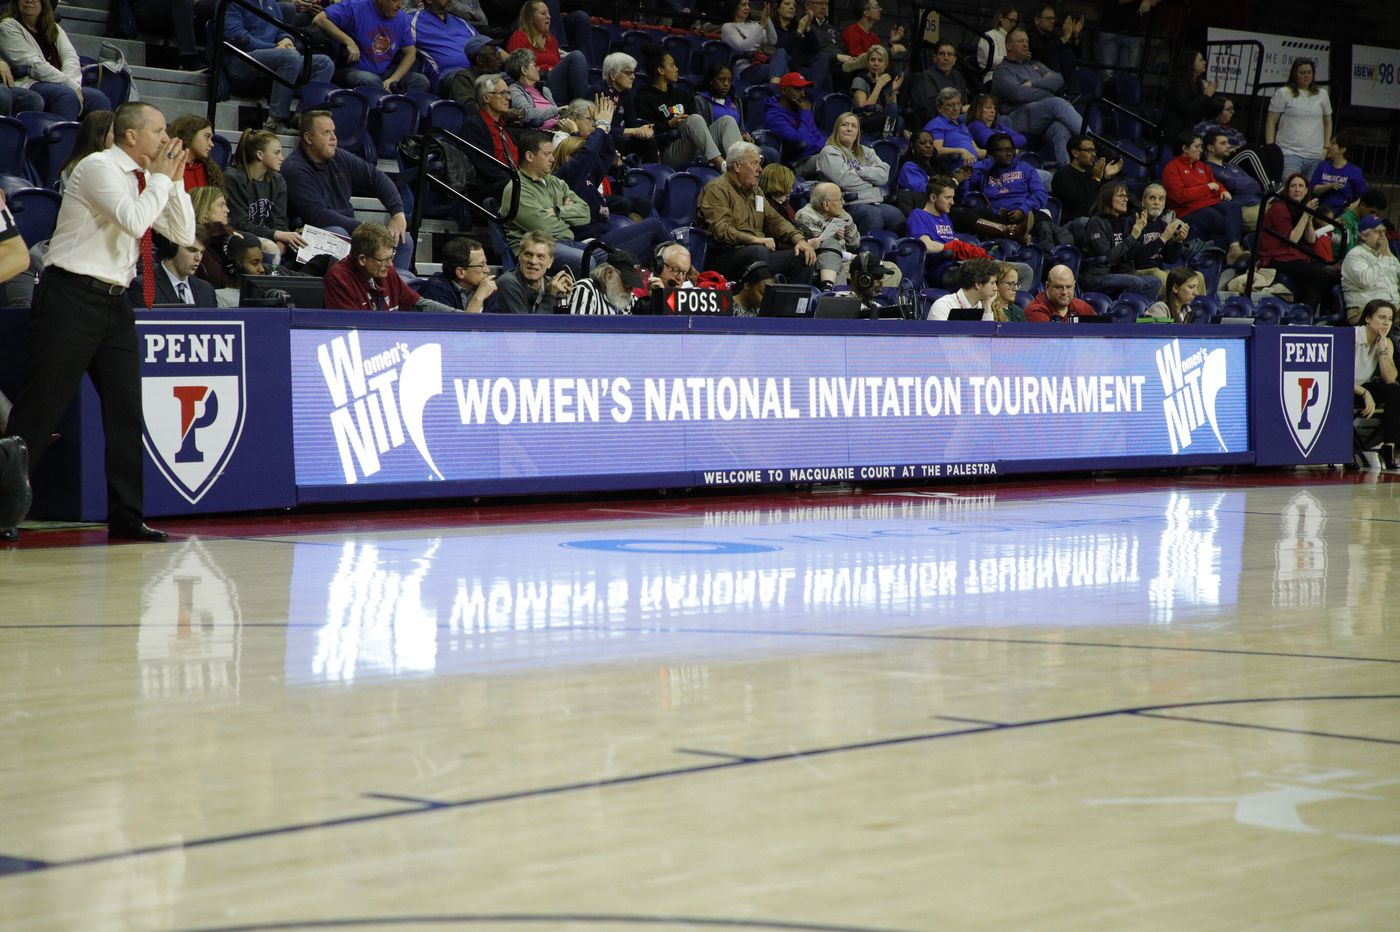 Women's NIT roundup: Villanova beats Old Dominion in overtime, Penn beats American, Drexel loses to Harvard